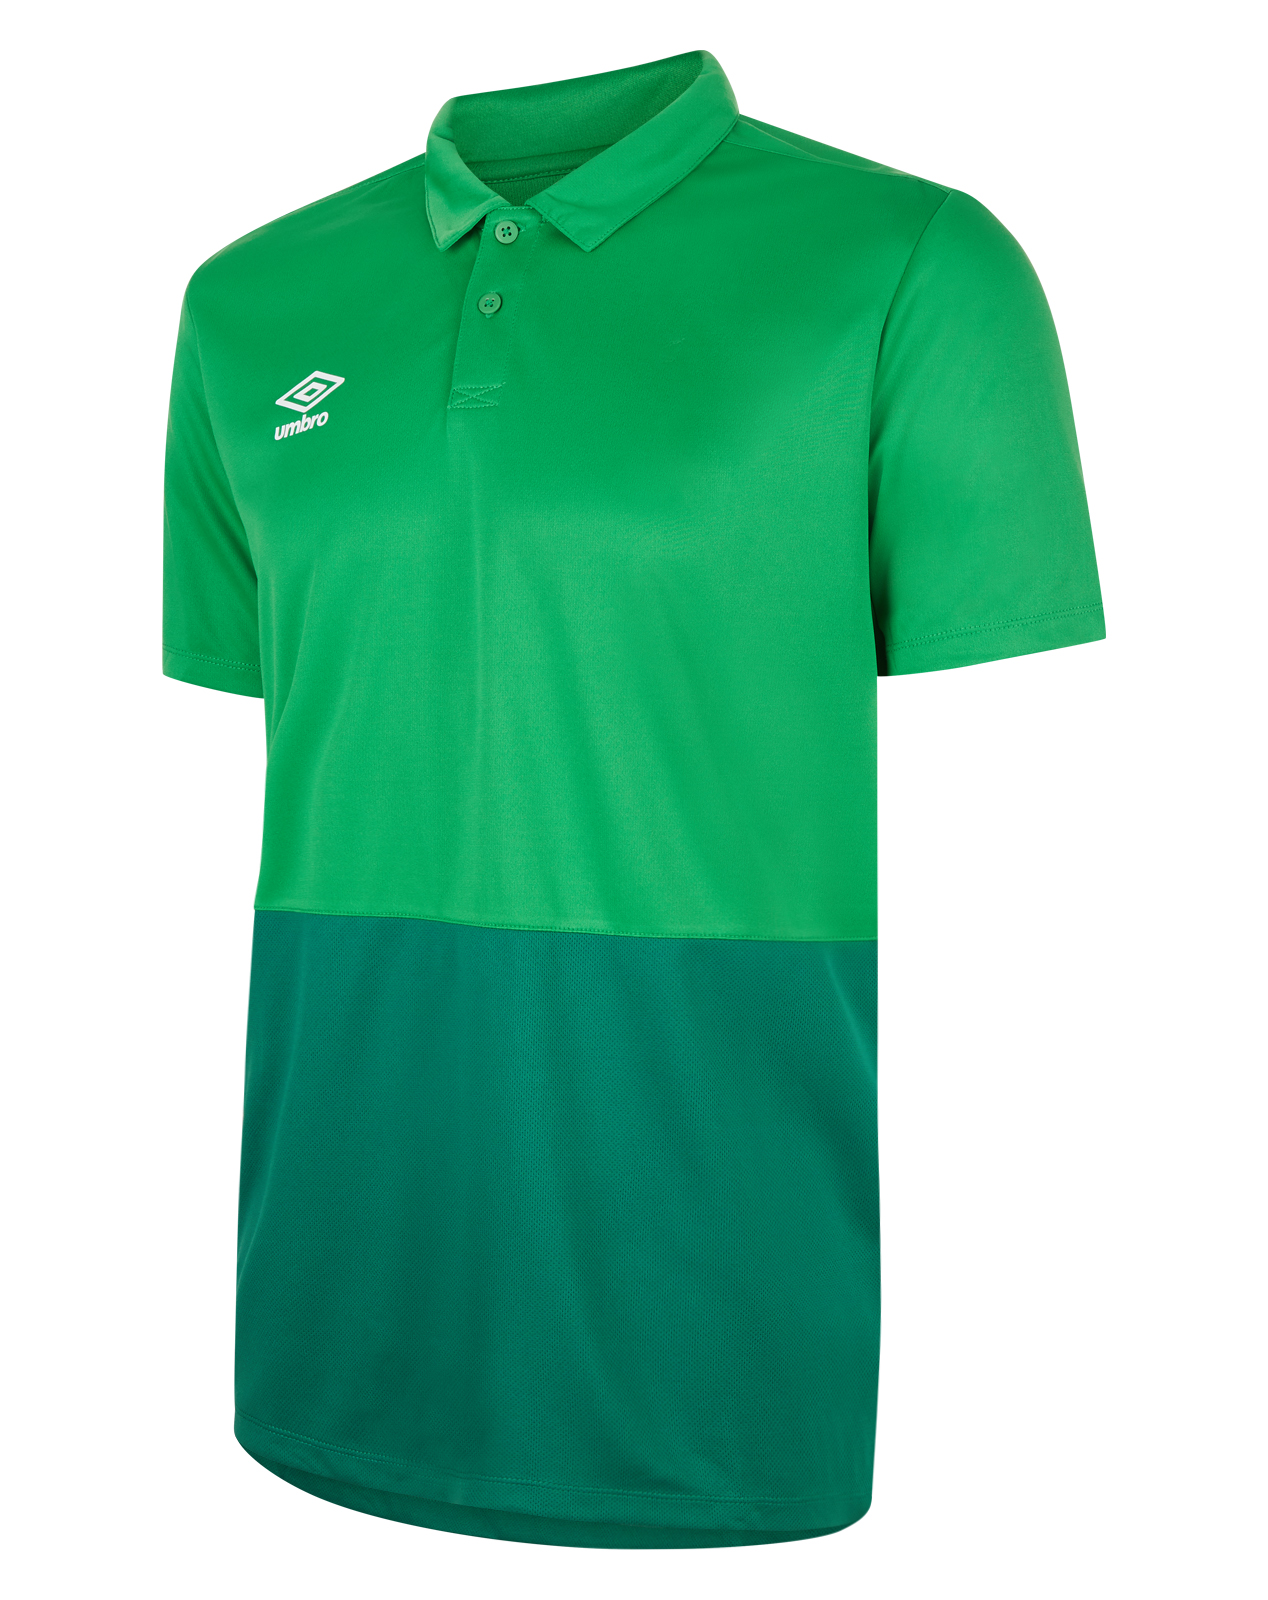 Umbro training poly polo with emerald green top half and contrast darker green bottom half